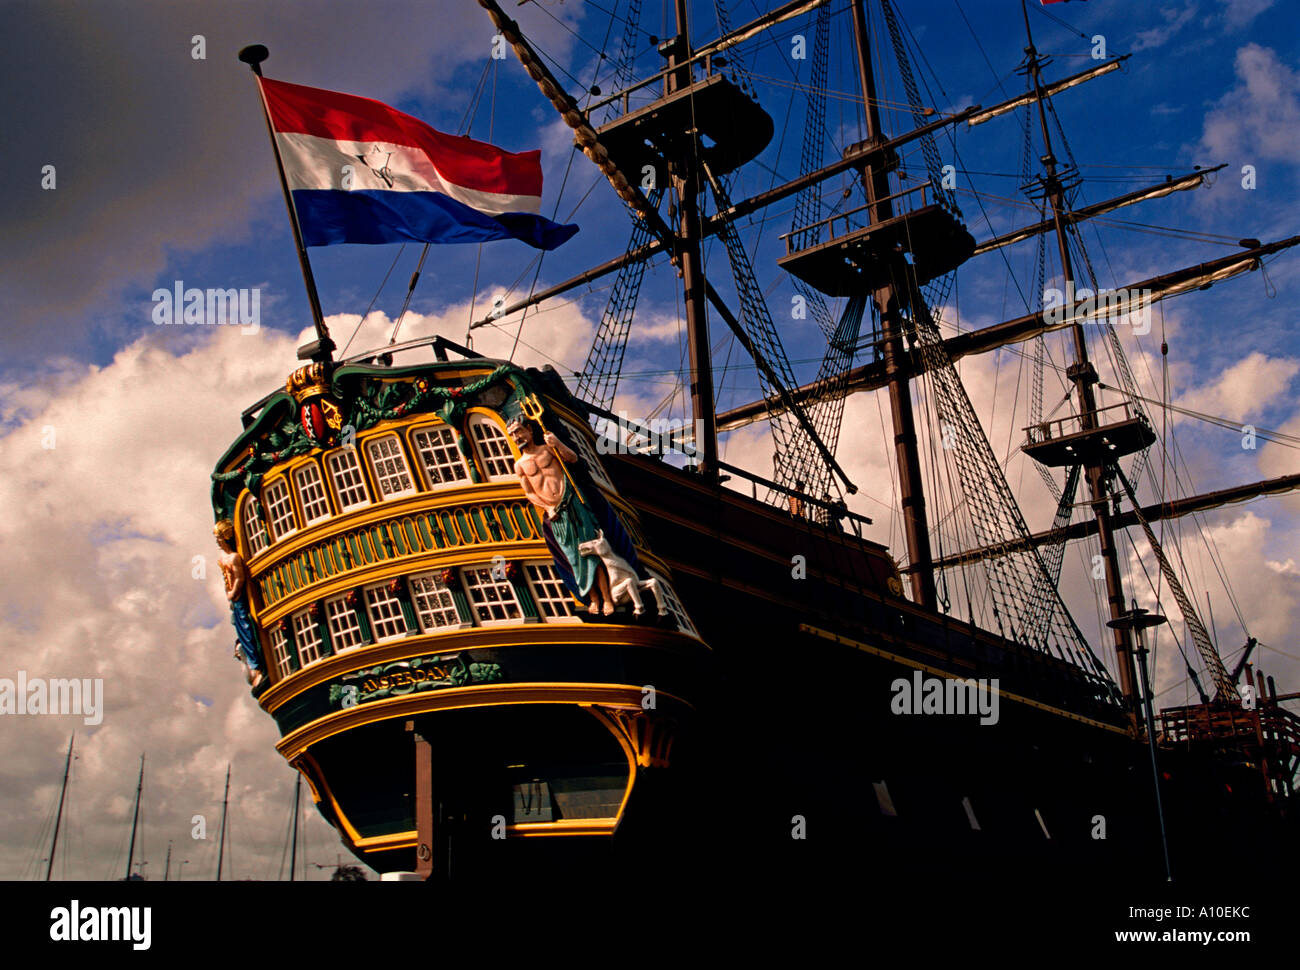 The Amsterdam, three-masted ship, clipper ship, replica, Dutch East India Company ship, Maritime Museum, Amsterdam, Holland, Netherlands, Europe - Stock Image